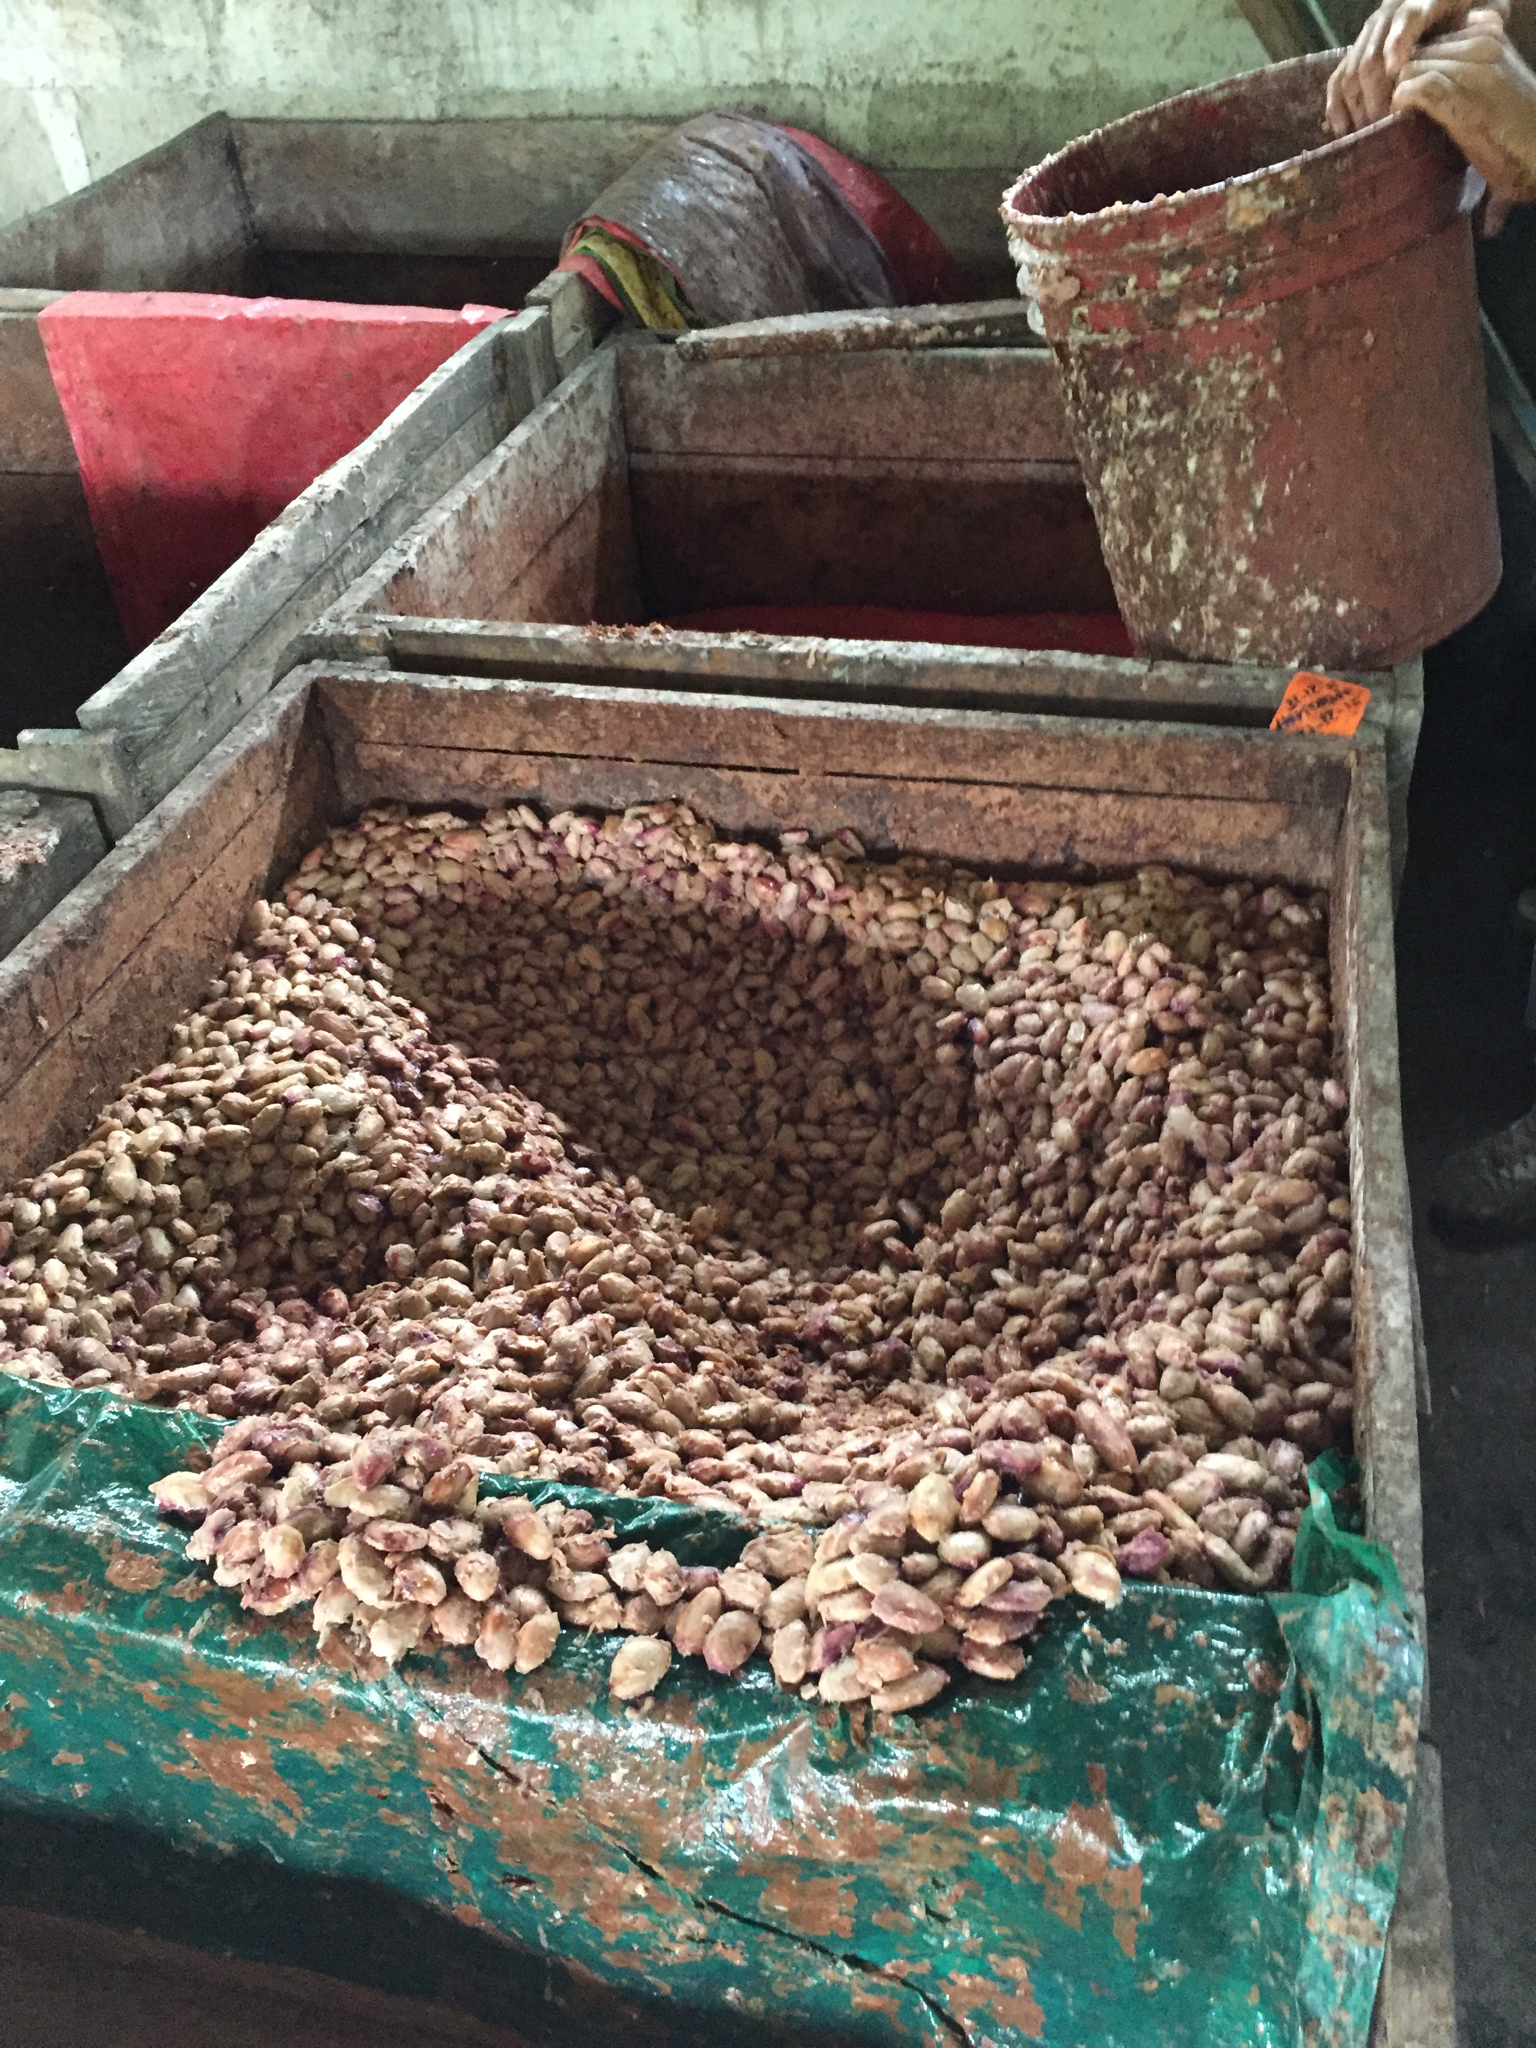 Fermentation - Learning about properly fermenting fine quality cacao with Giff at Cacao Bisiesto farm and post harvest processing in La Dalia, Nicaragua.